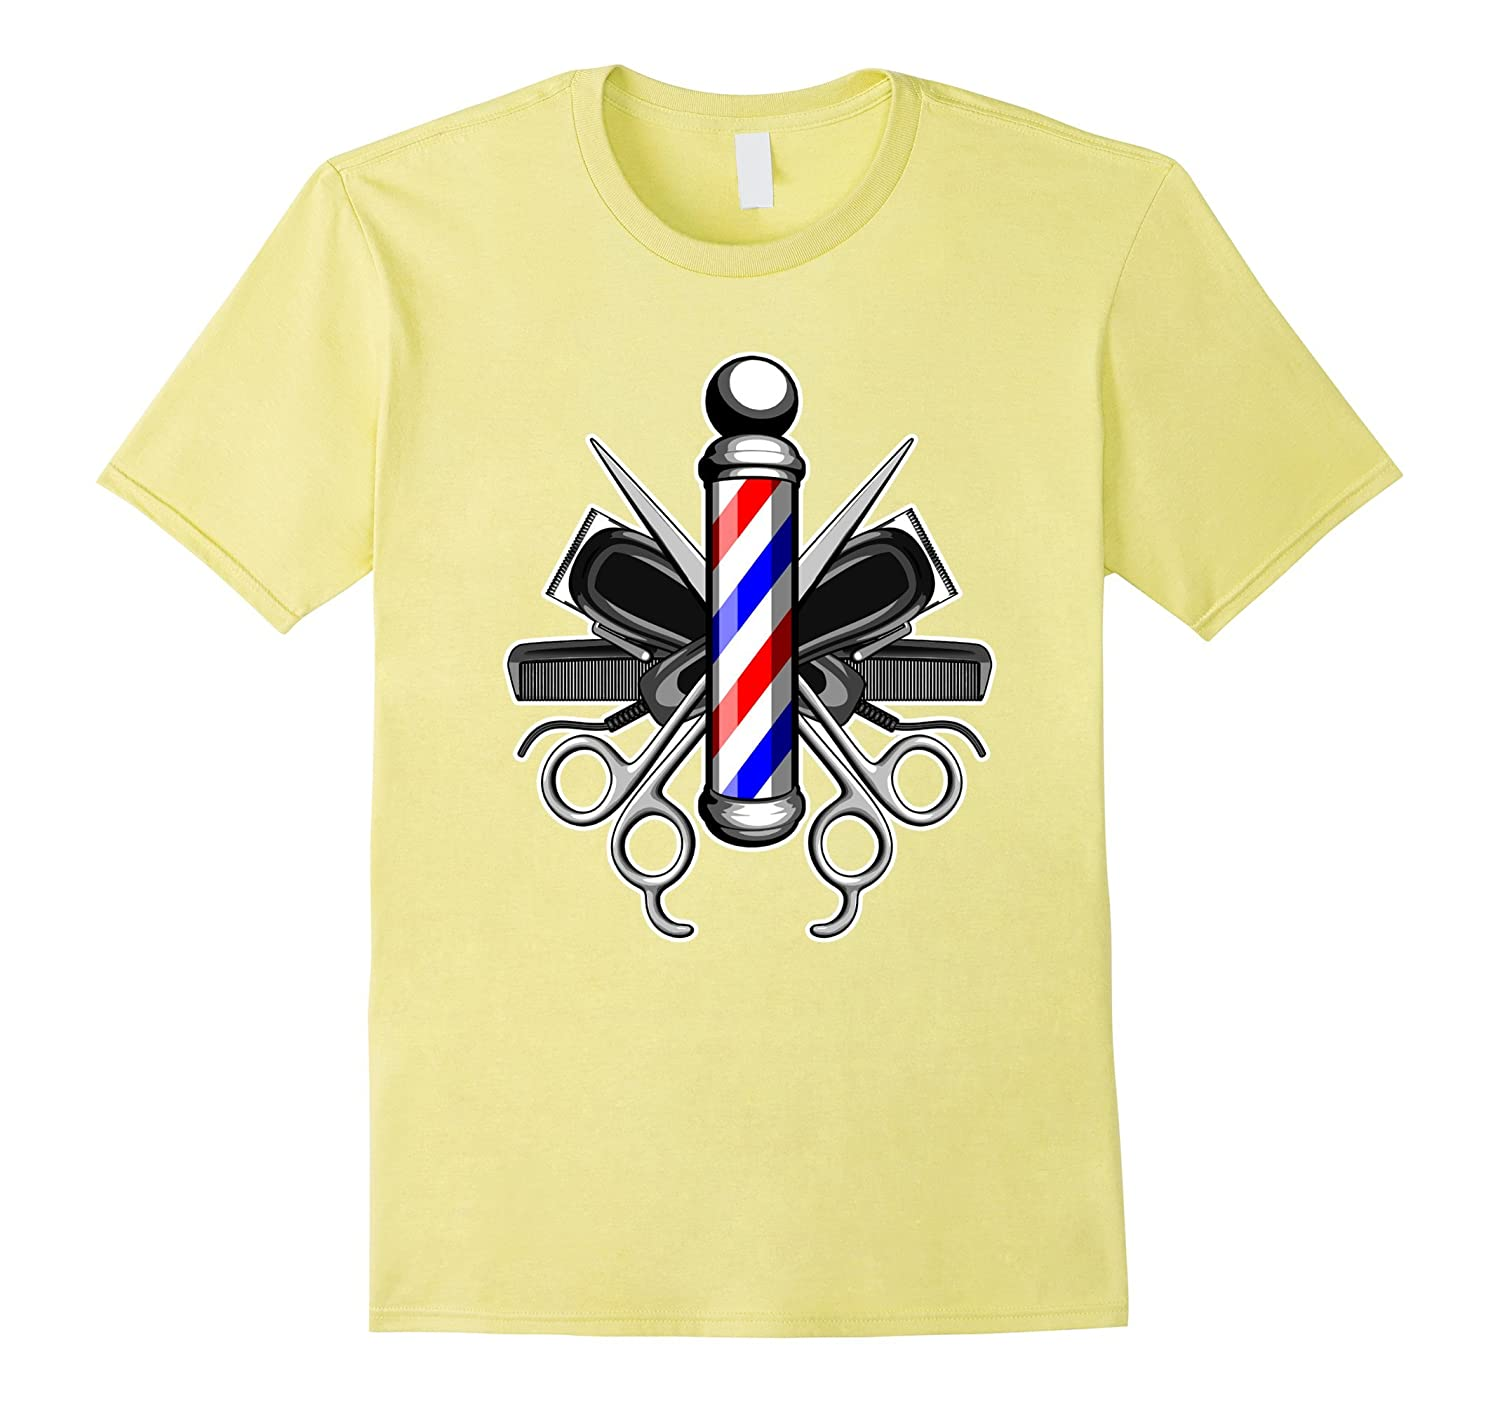 Barbers Pole With Crossed Scissors and Hair Clippers T-Shirt-CL